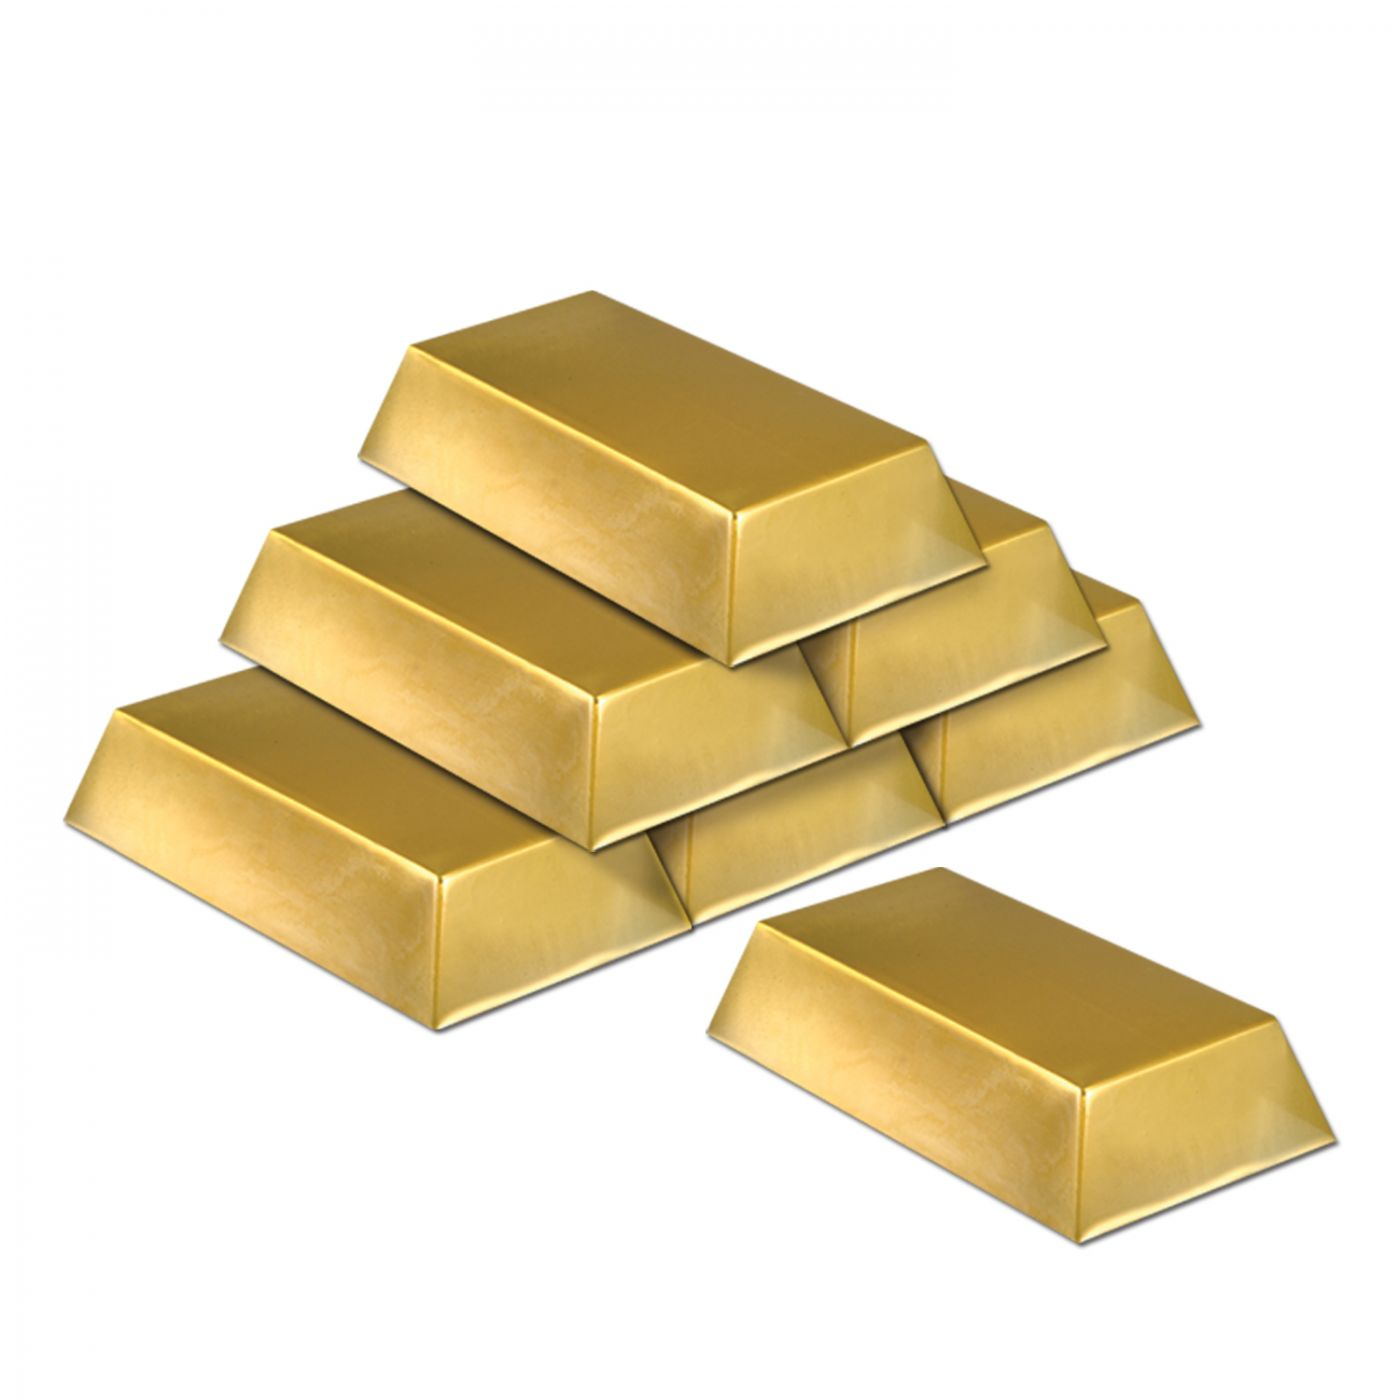 Plastic Gold Bar Decorations image